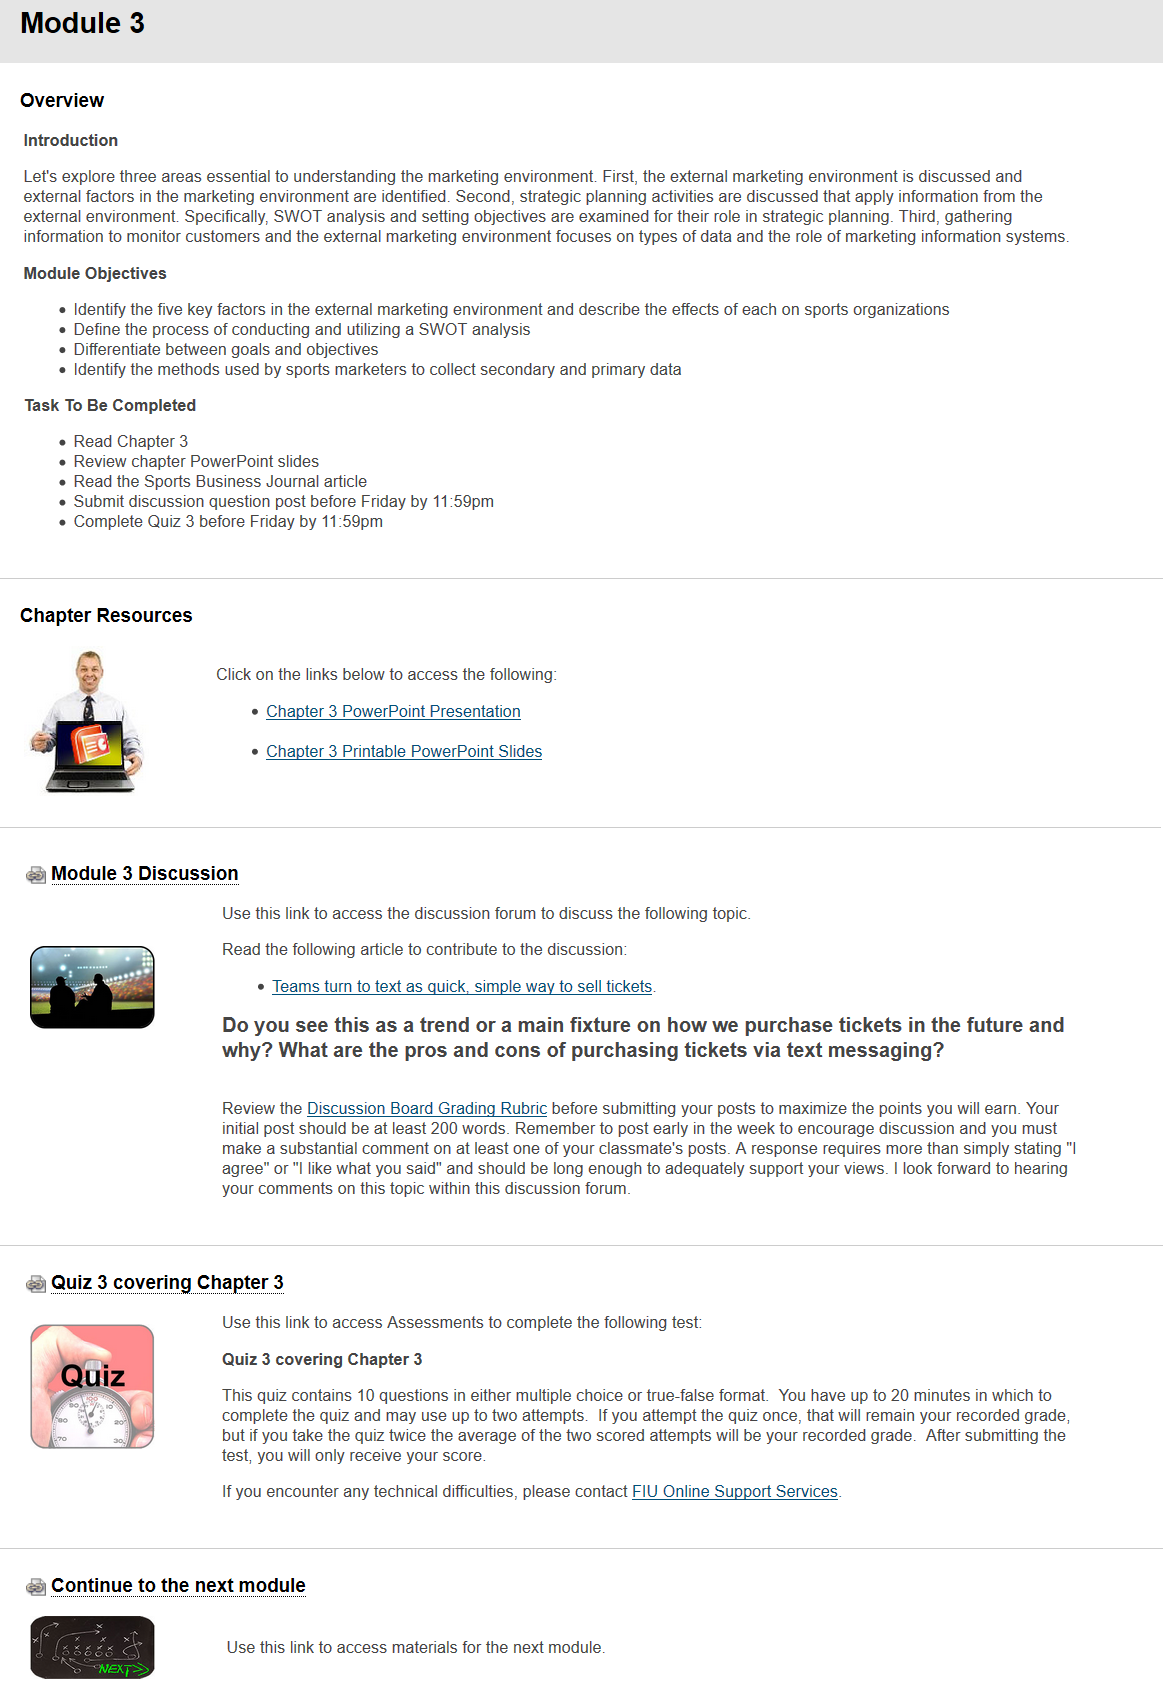 Quality matters essentials qme fiuonline content presentation example 1betcityfo Images